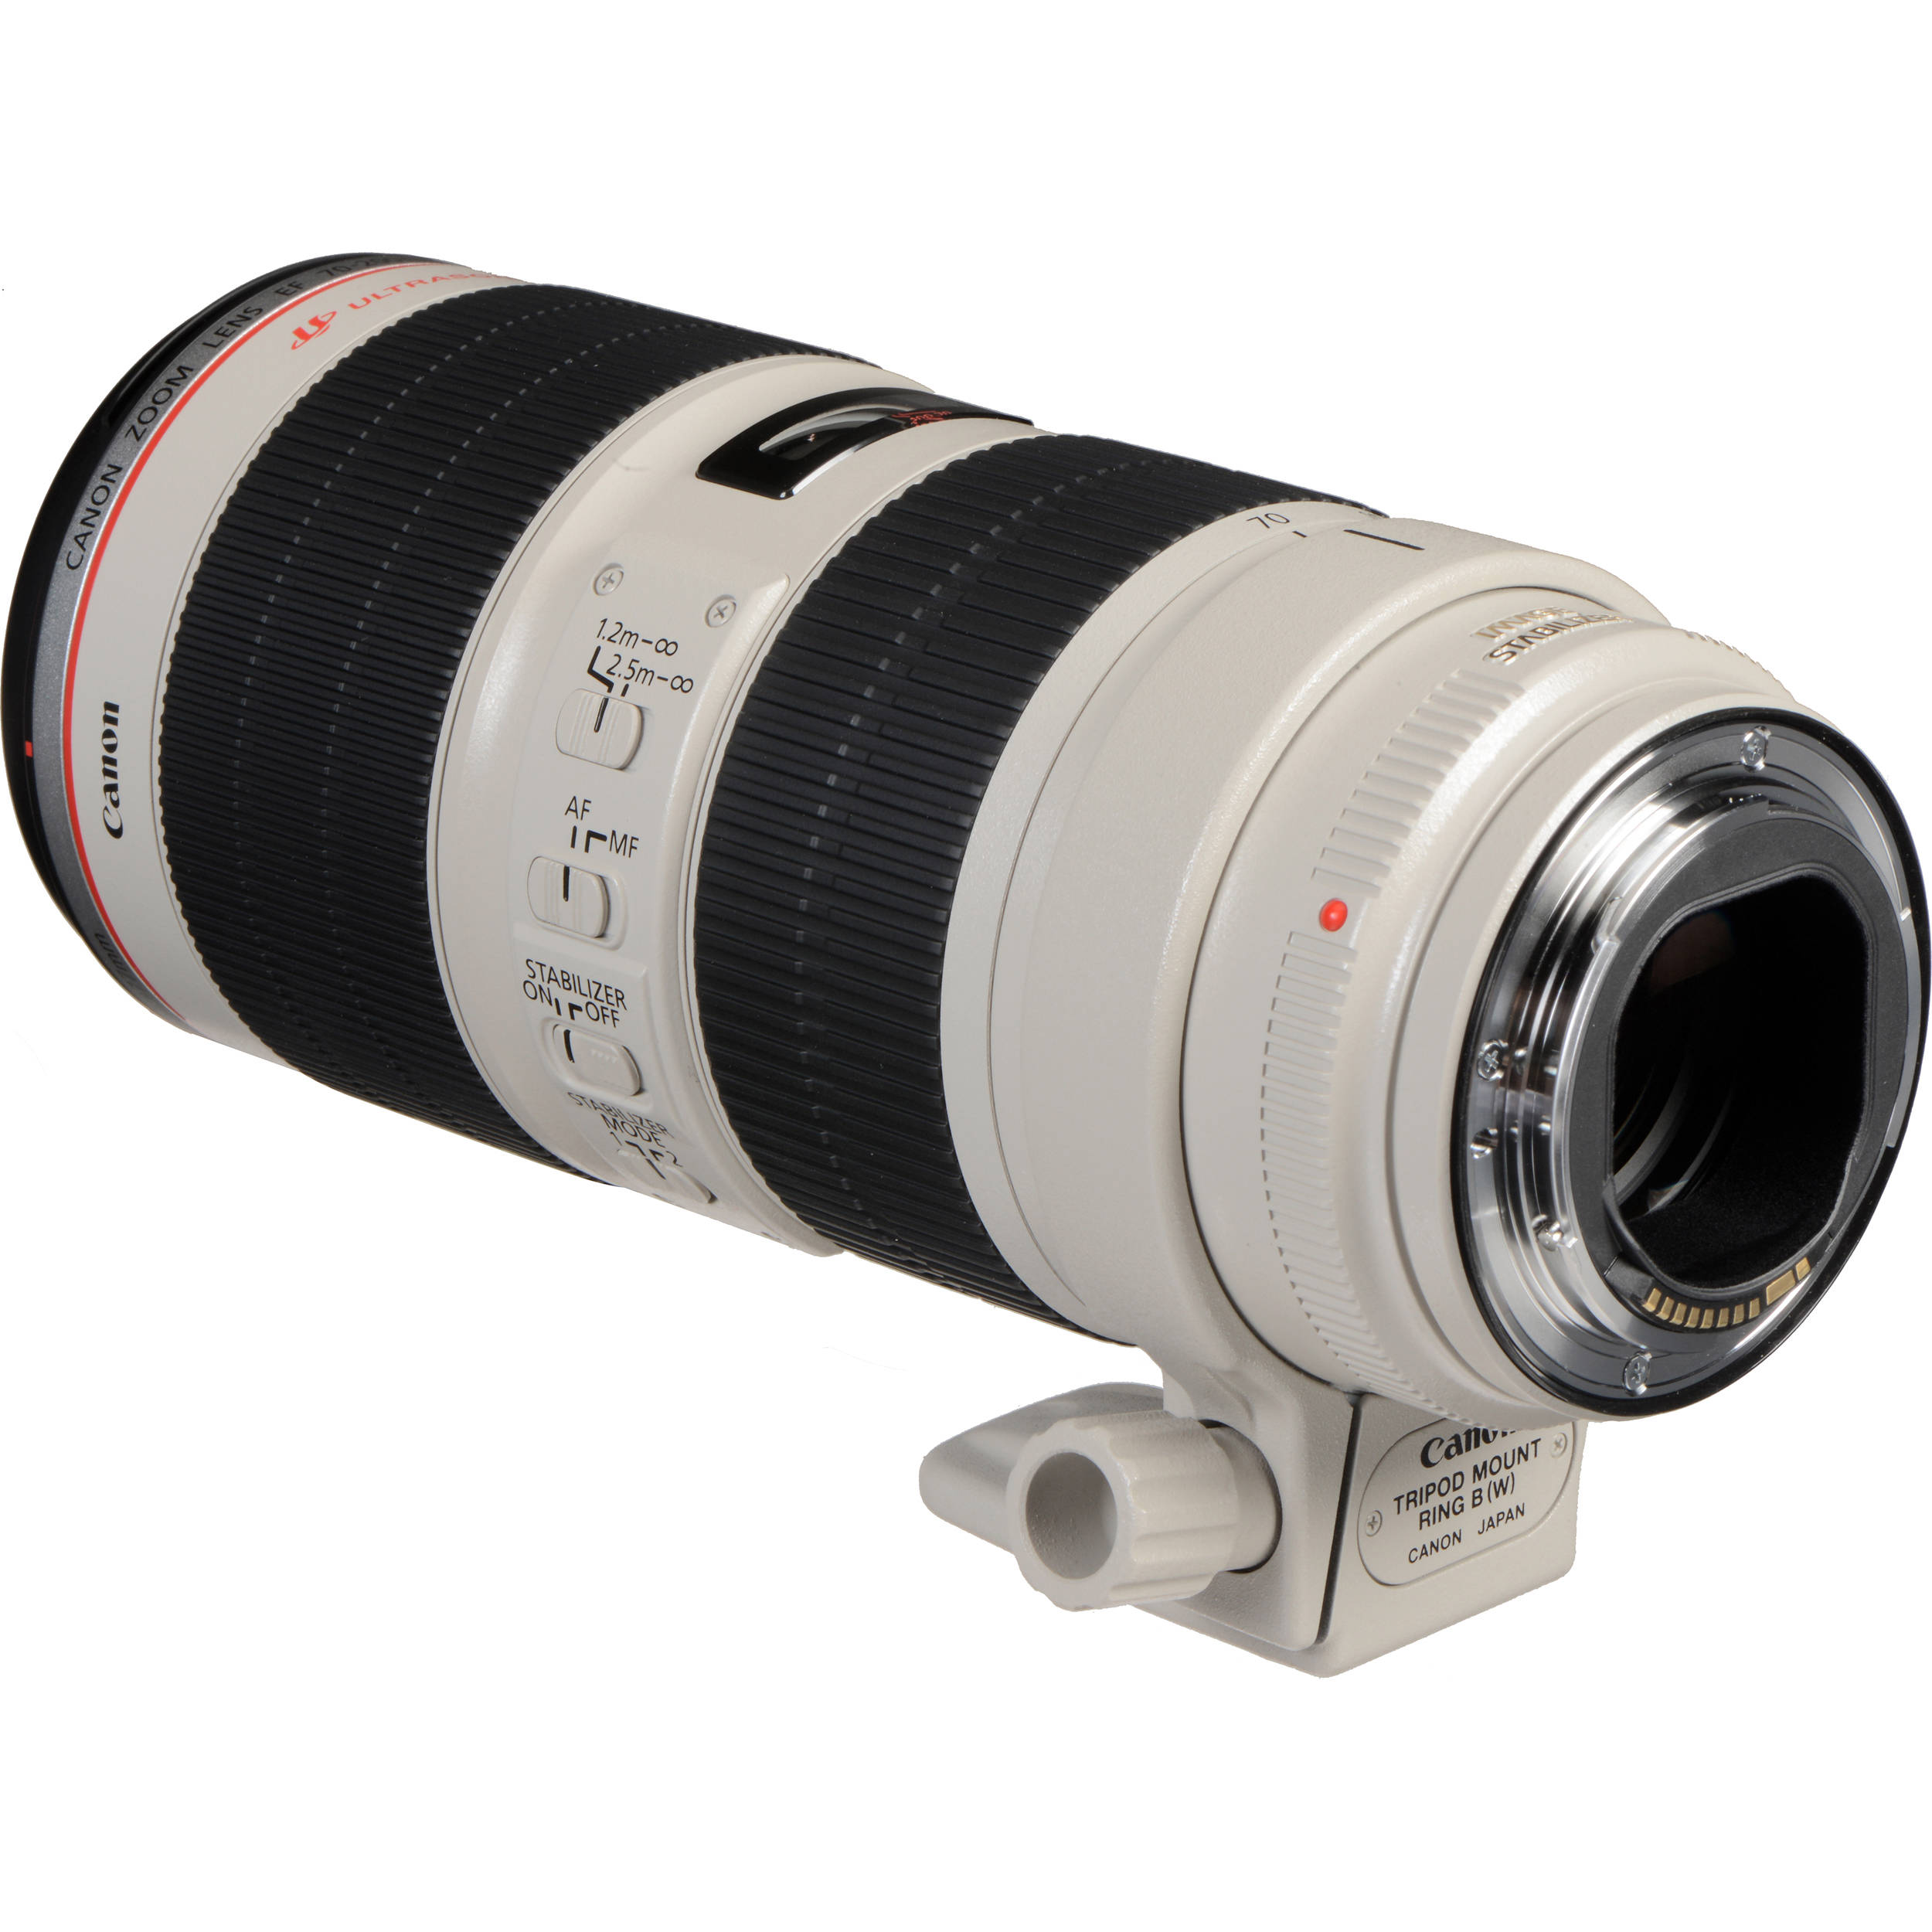 Canon Image Stabilizer 70-200mm F/2.8L IS II EF USM AF Zoom Lens